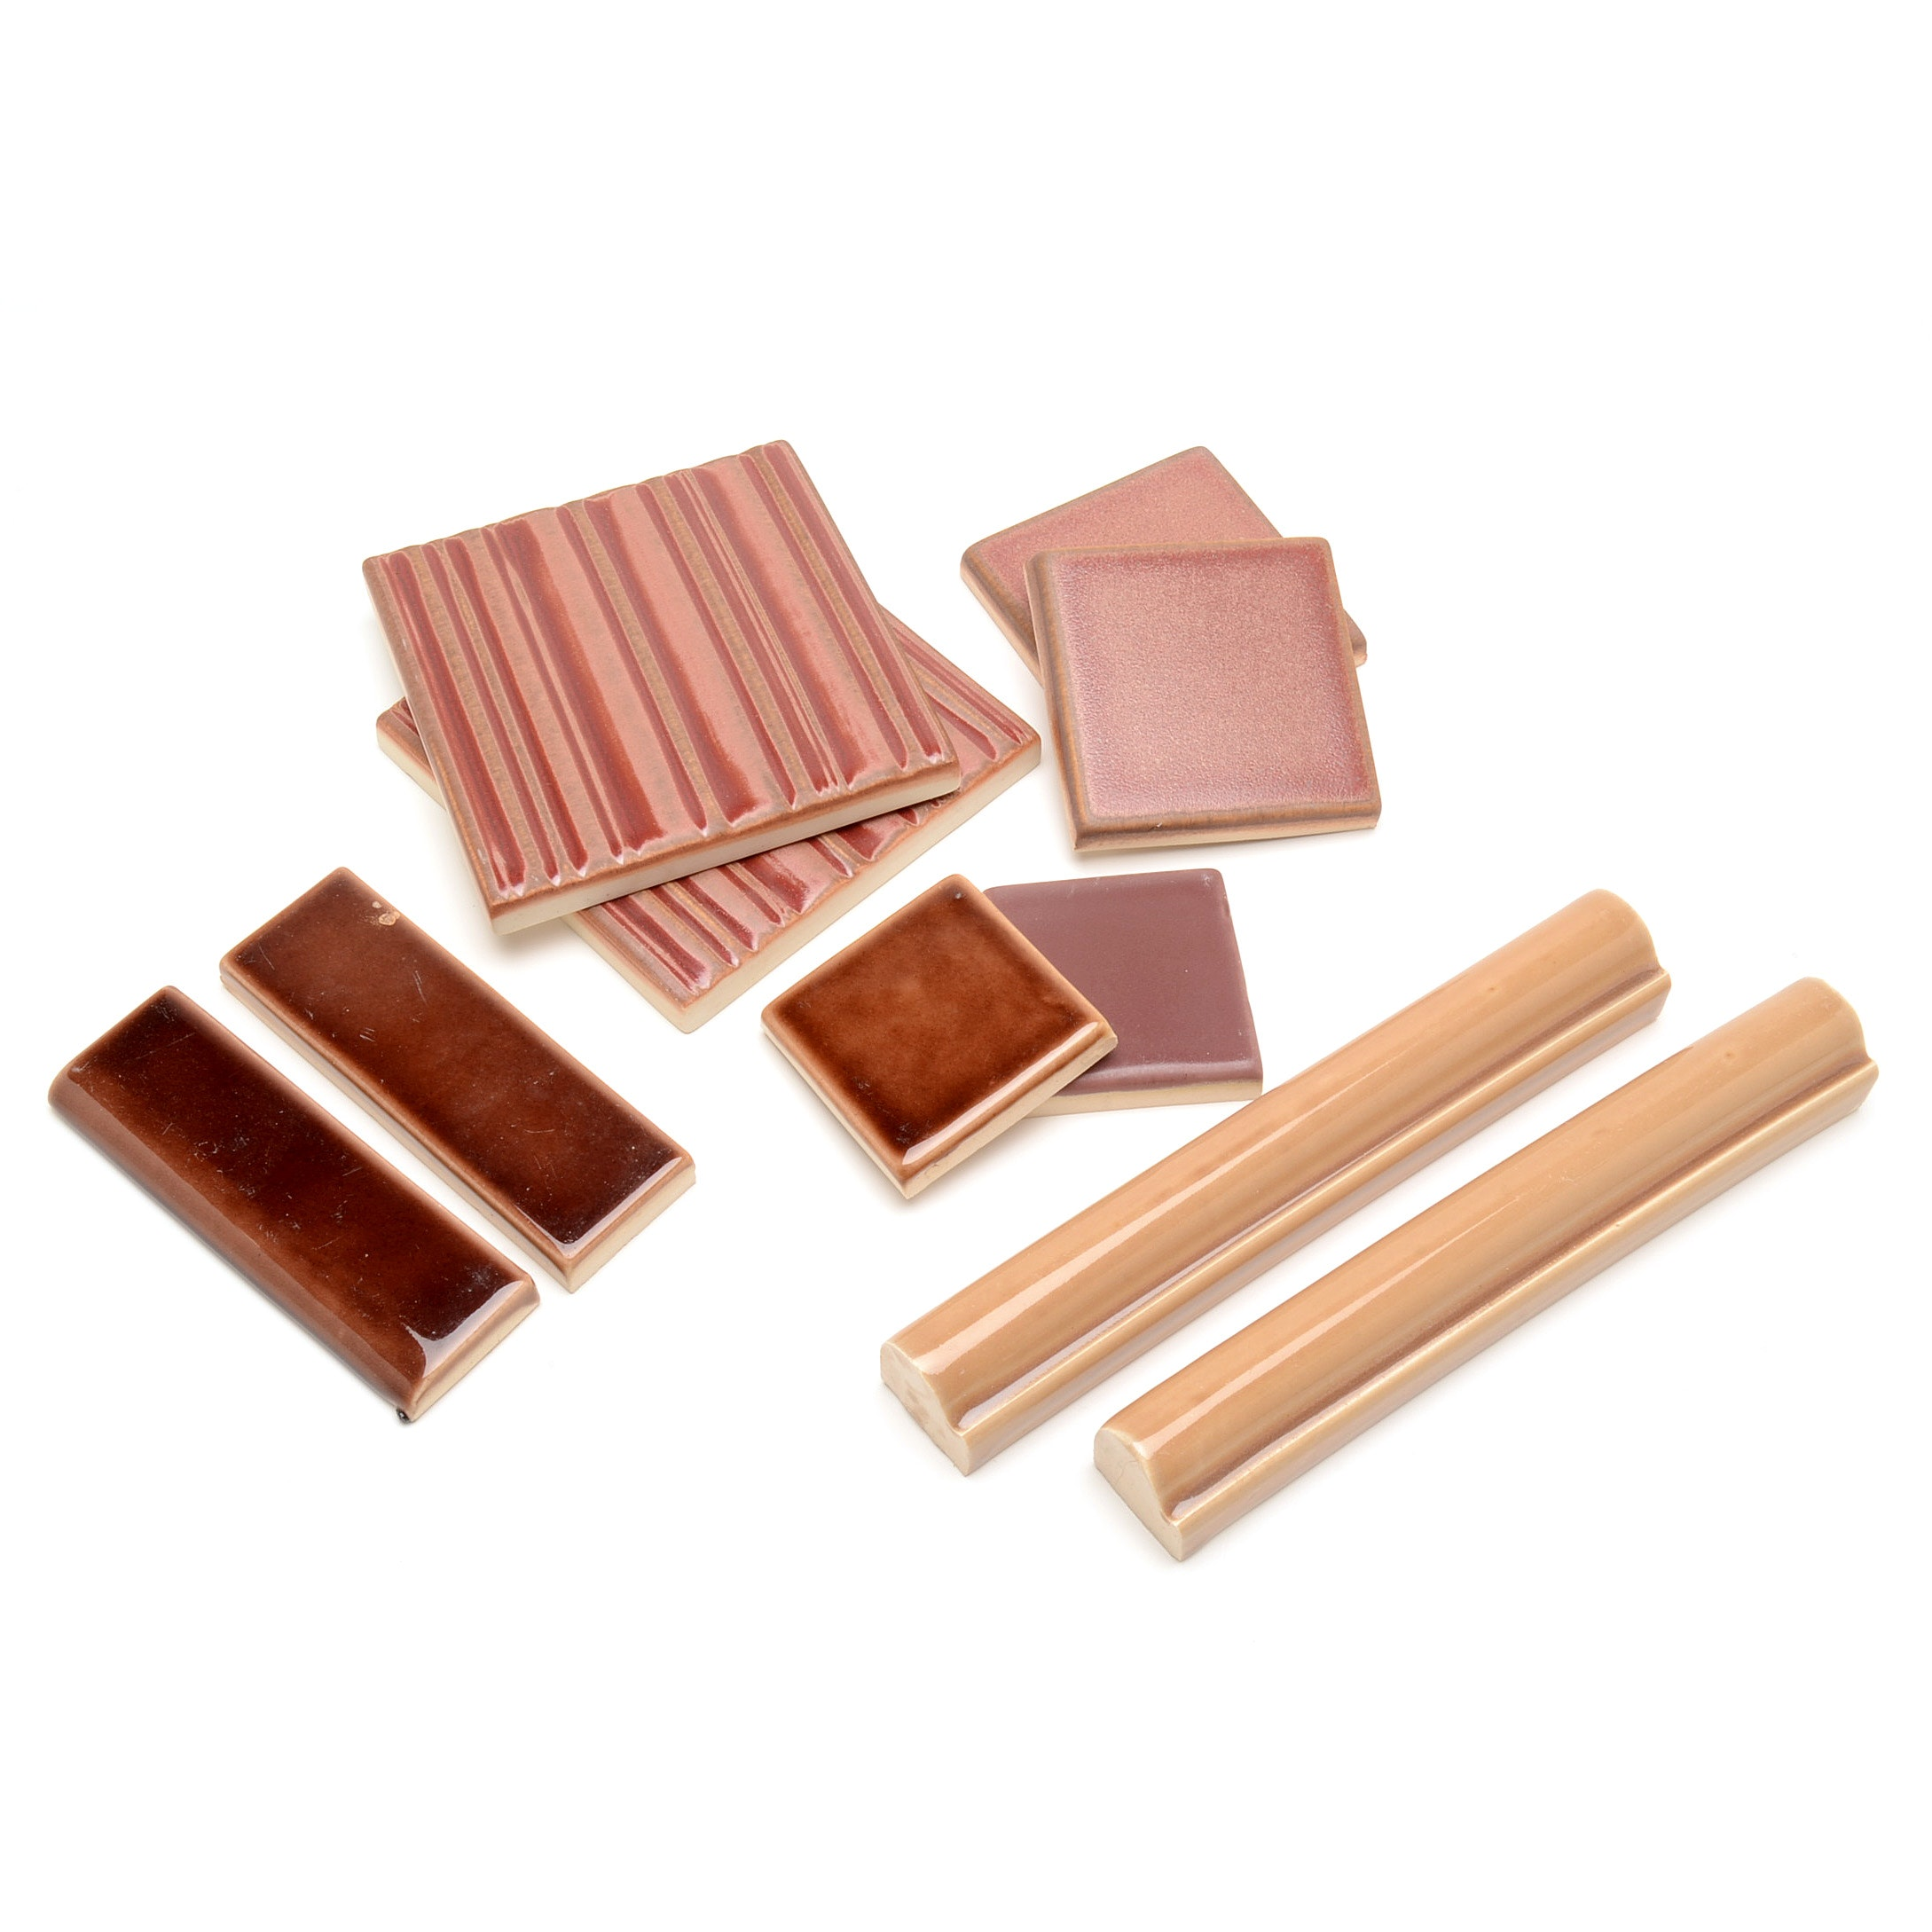 Collection of Rookwood Pottery Architectural Tiles and Moldings